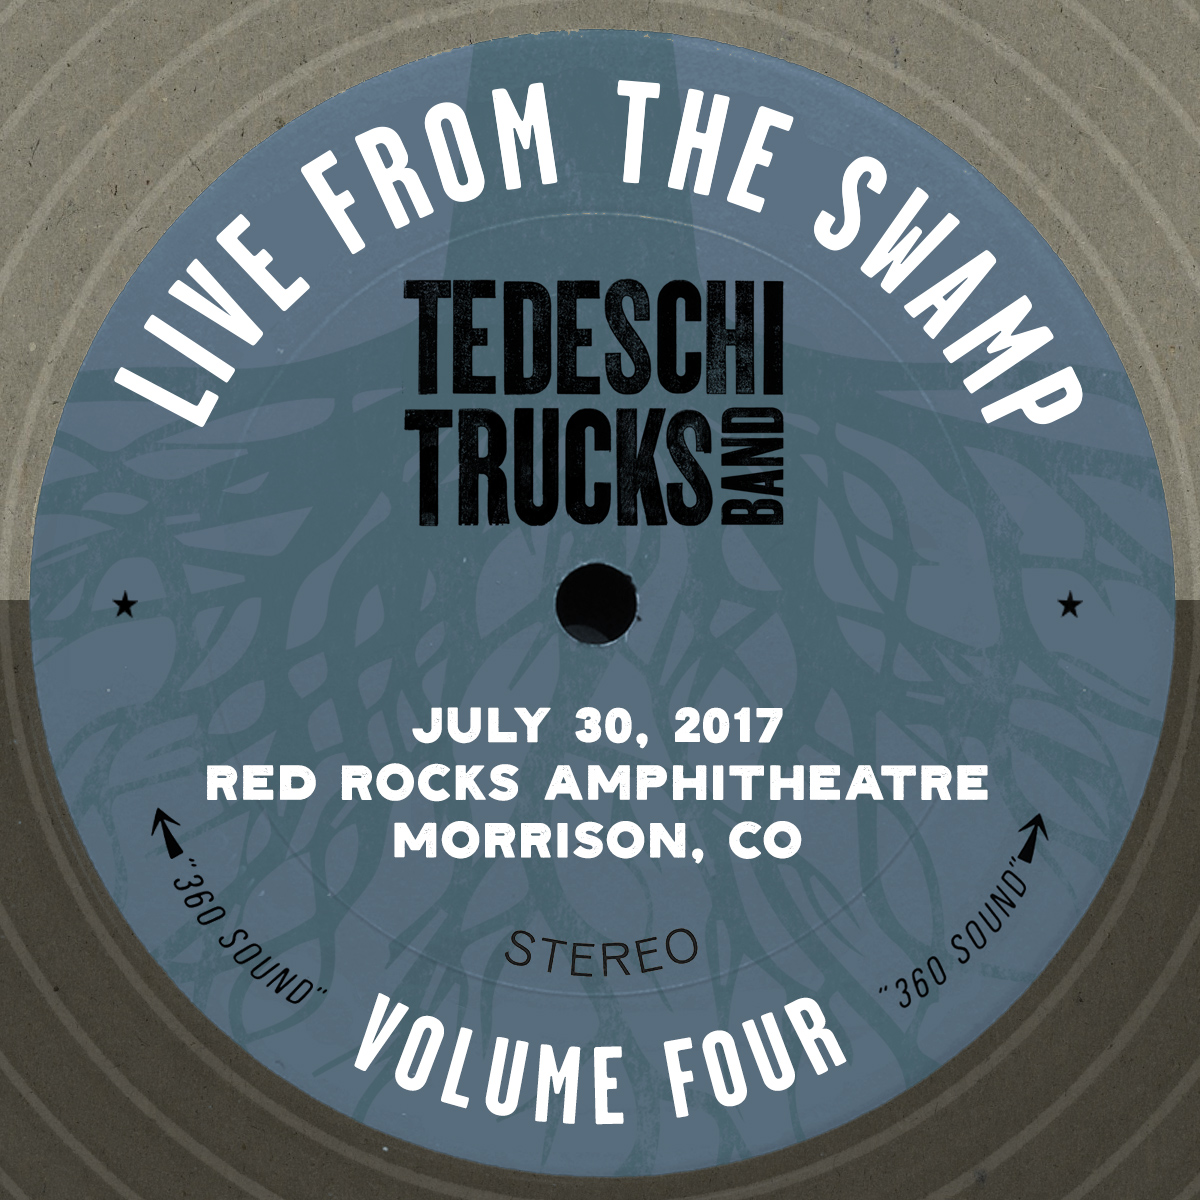 Live From The Swamp, Vol. 4: Red Rocks Amphitheatre, July 30, 2017